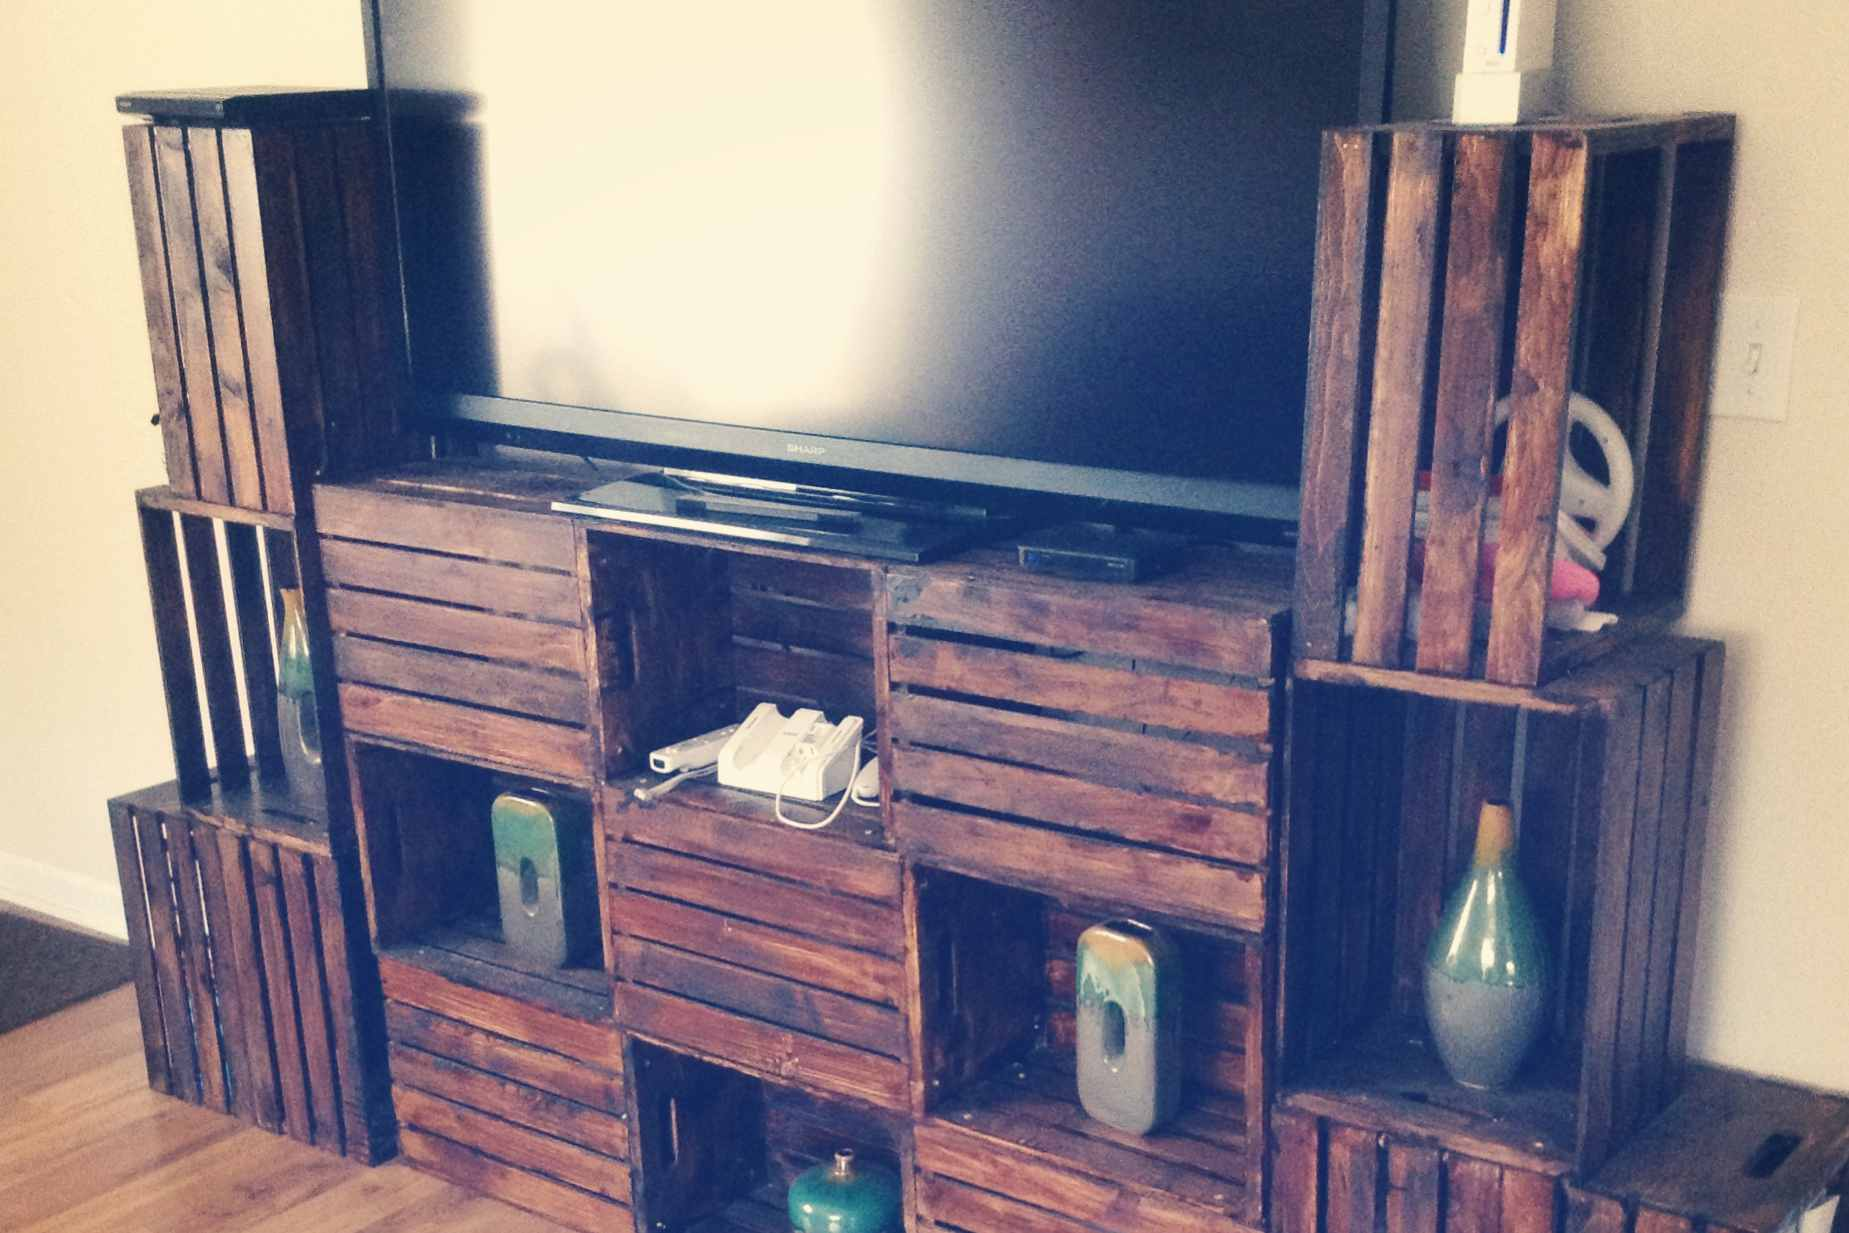 7 Ways To Make Your Own Tv Stand Hide Ugly Cable Boxes And Wires 1 Home Theater Wiring Diagram